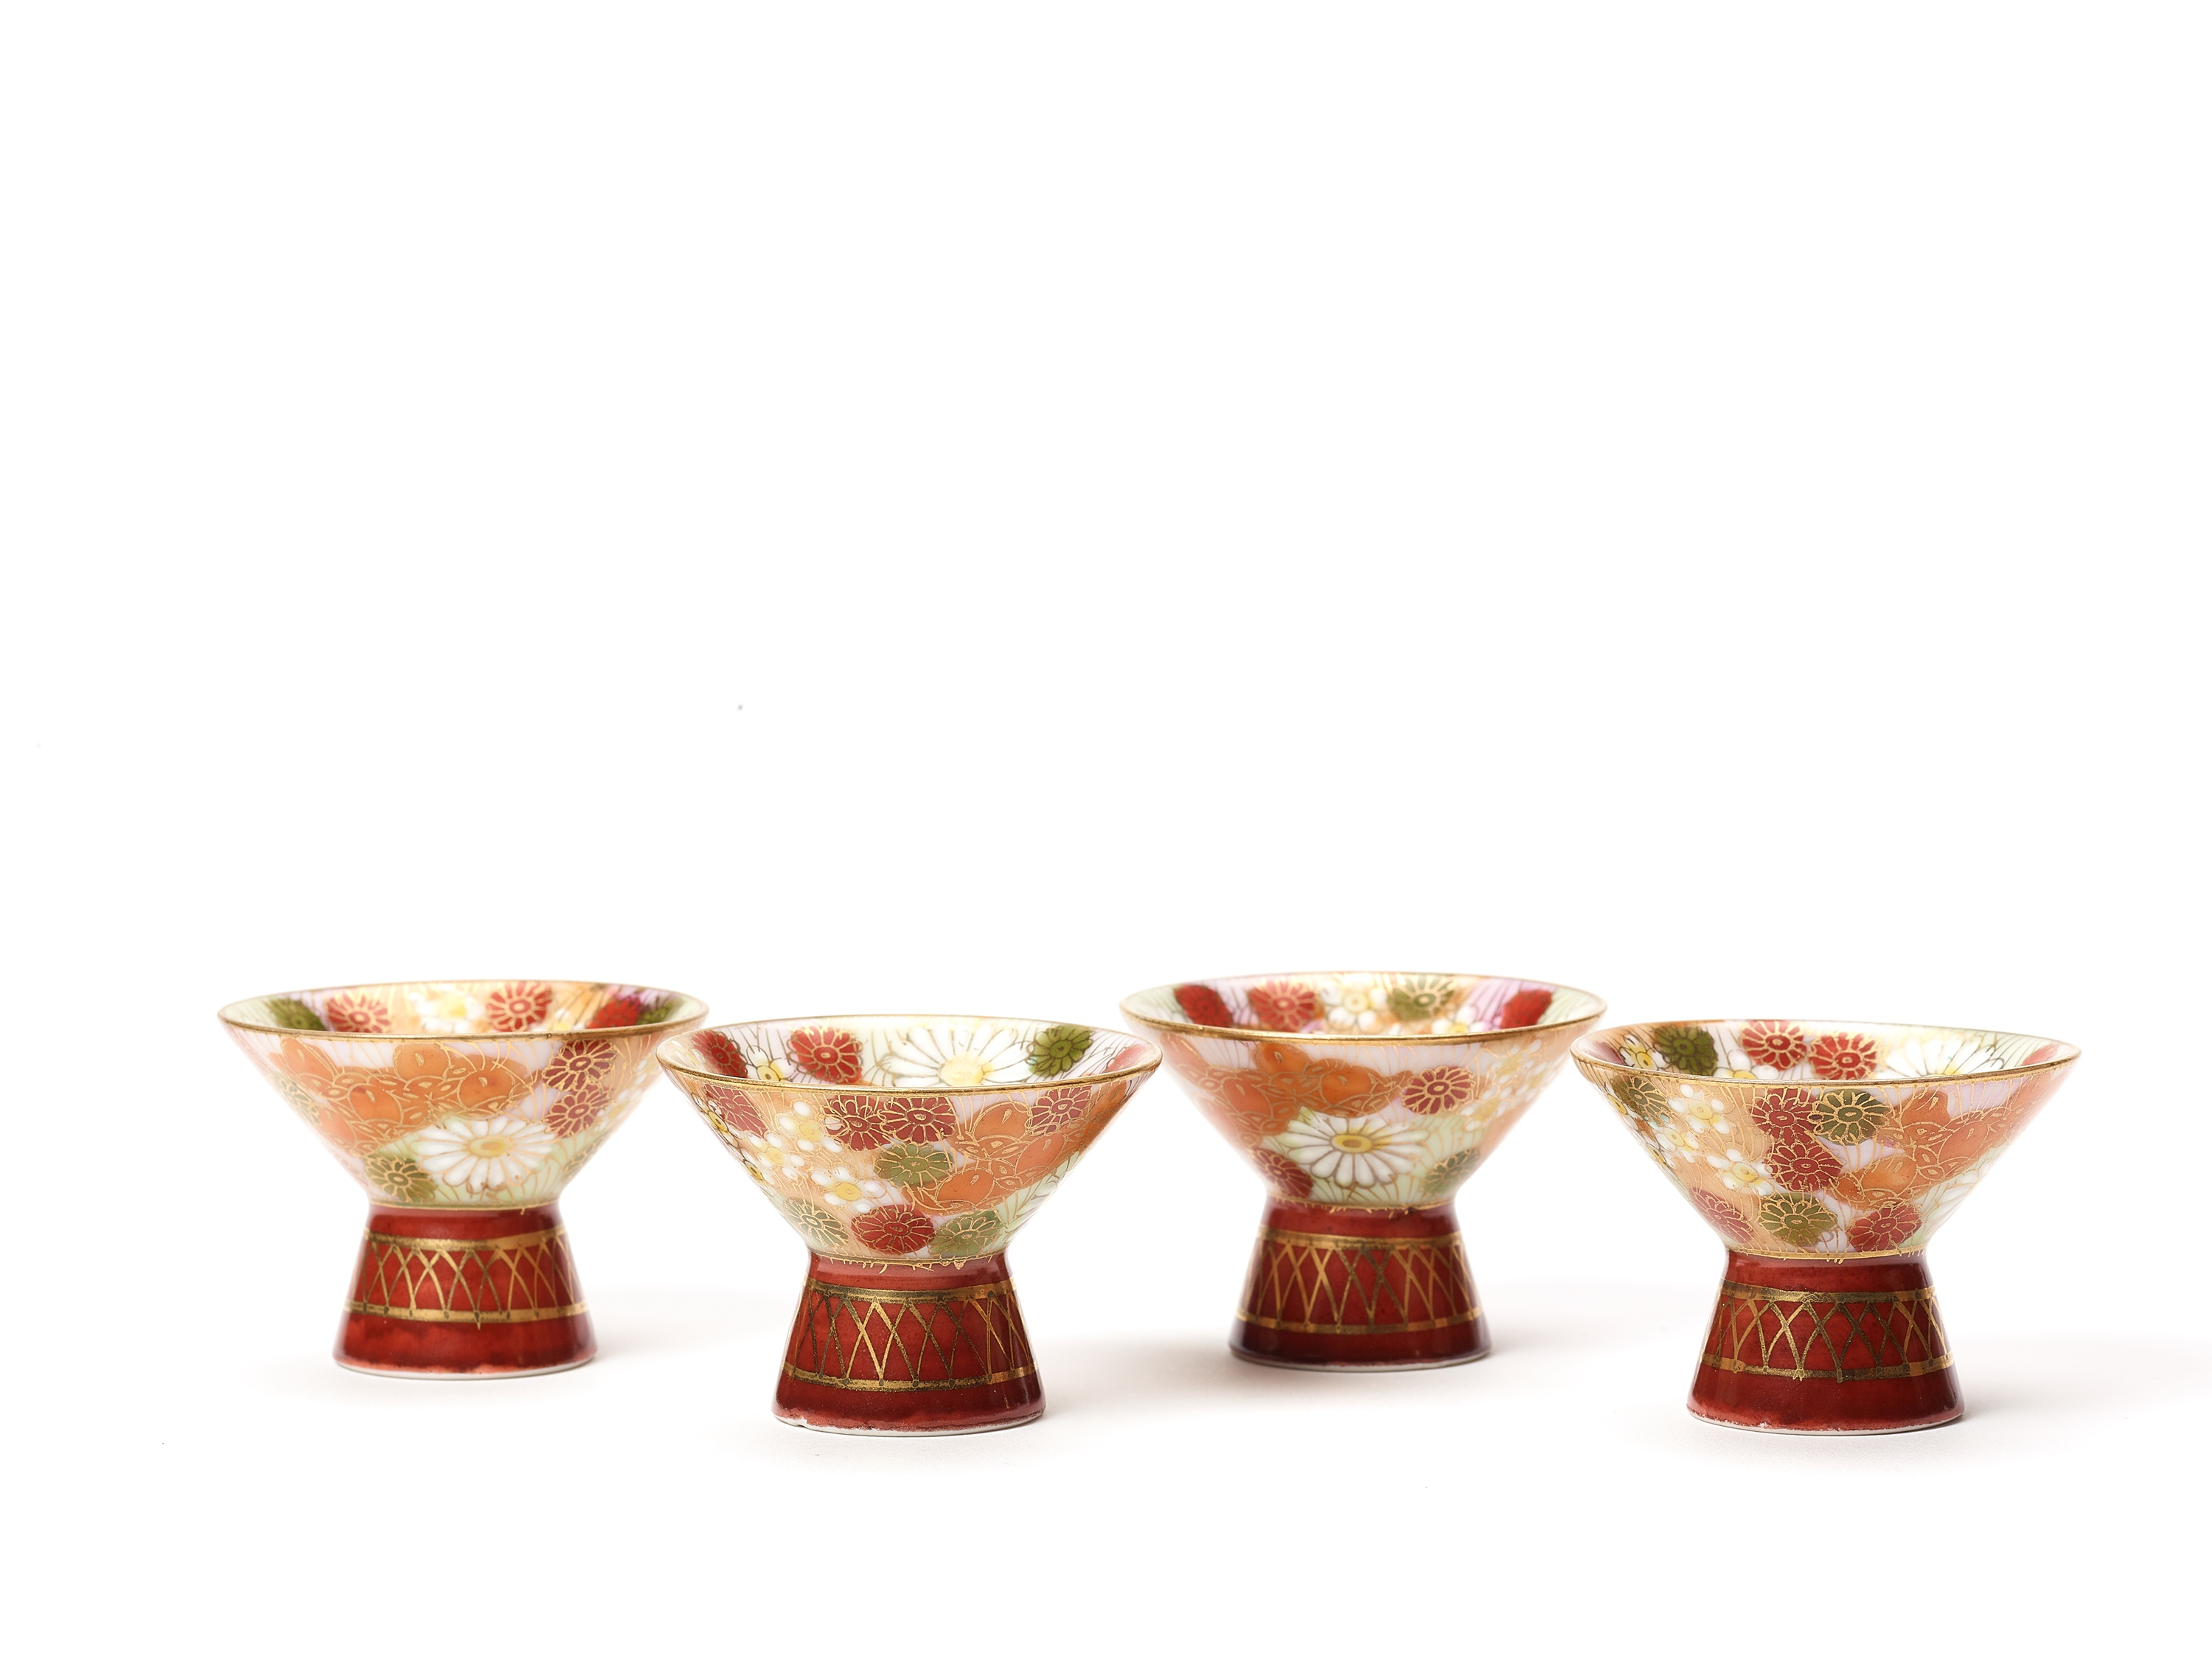 TWO SMALL VASES, SIGNED SHUSAN, AND FOUR SAKE CUPS WITH FLORAL DECORATIONS - Image 4 of 8